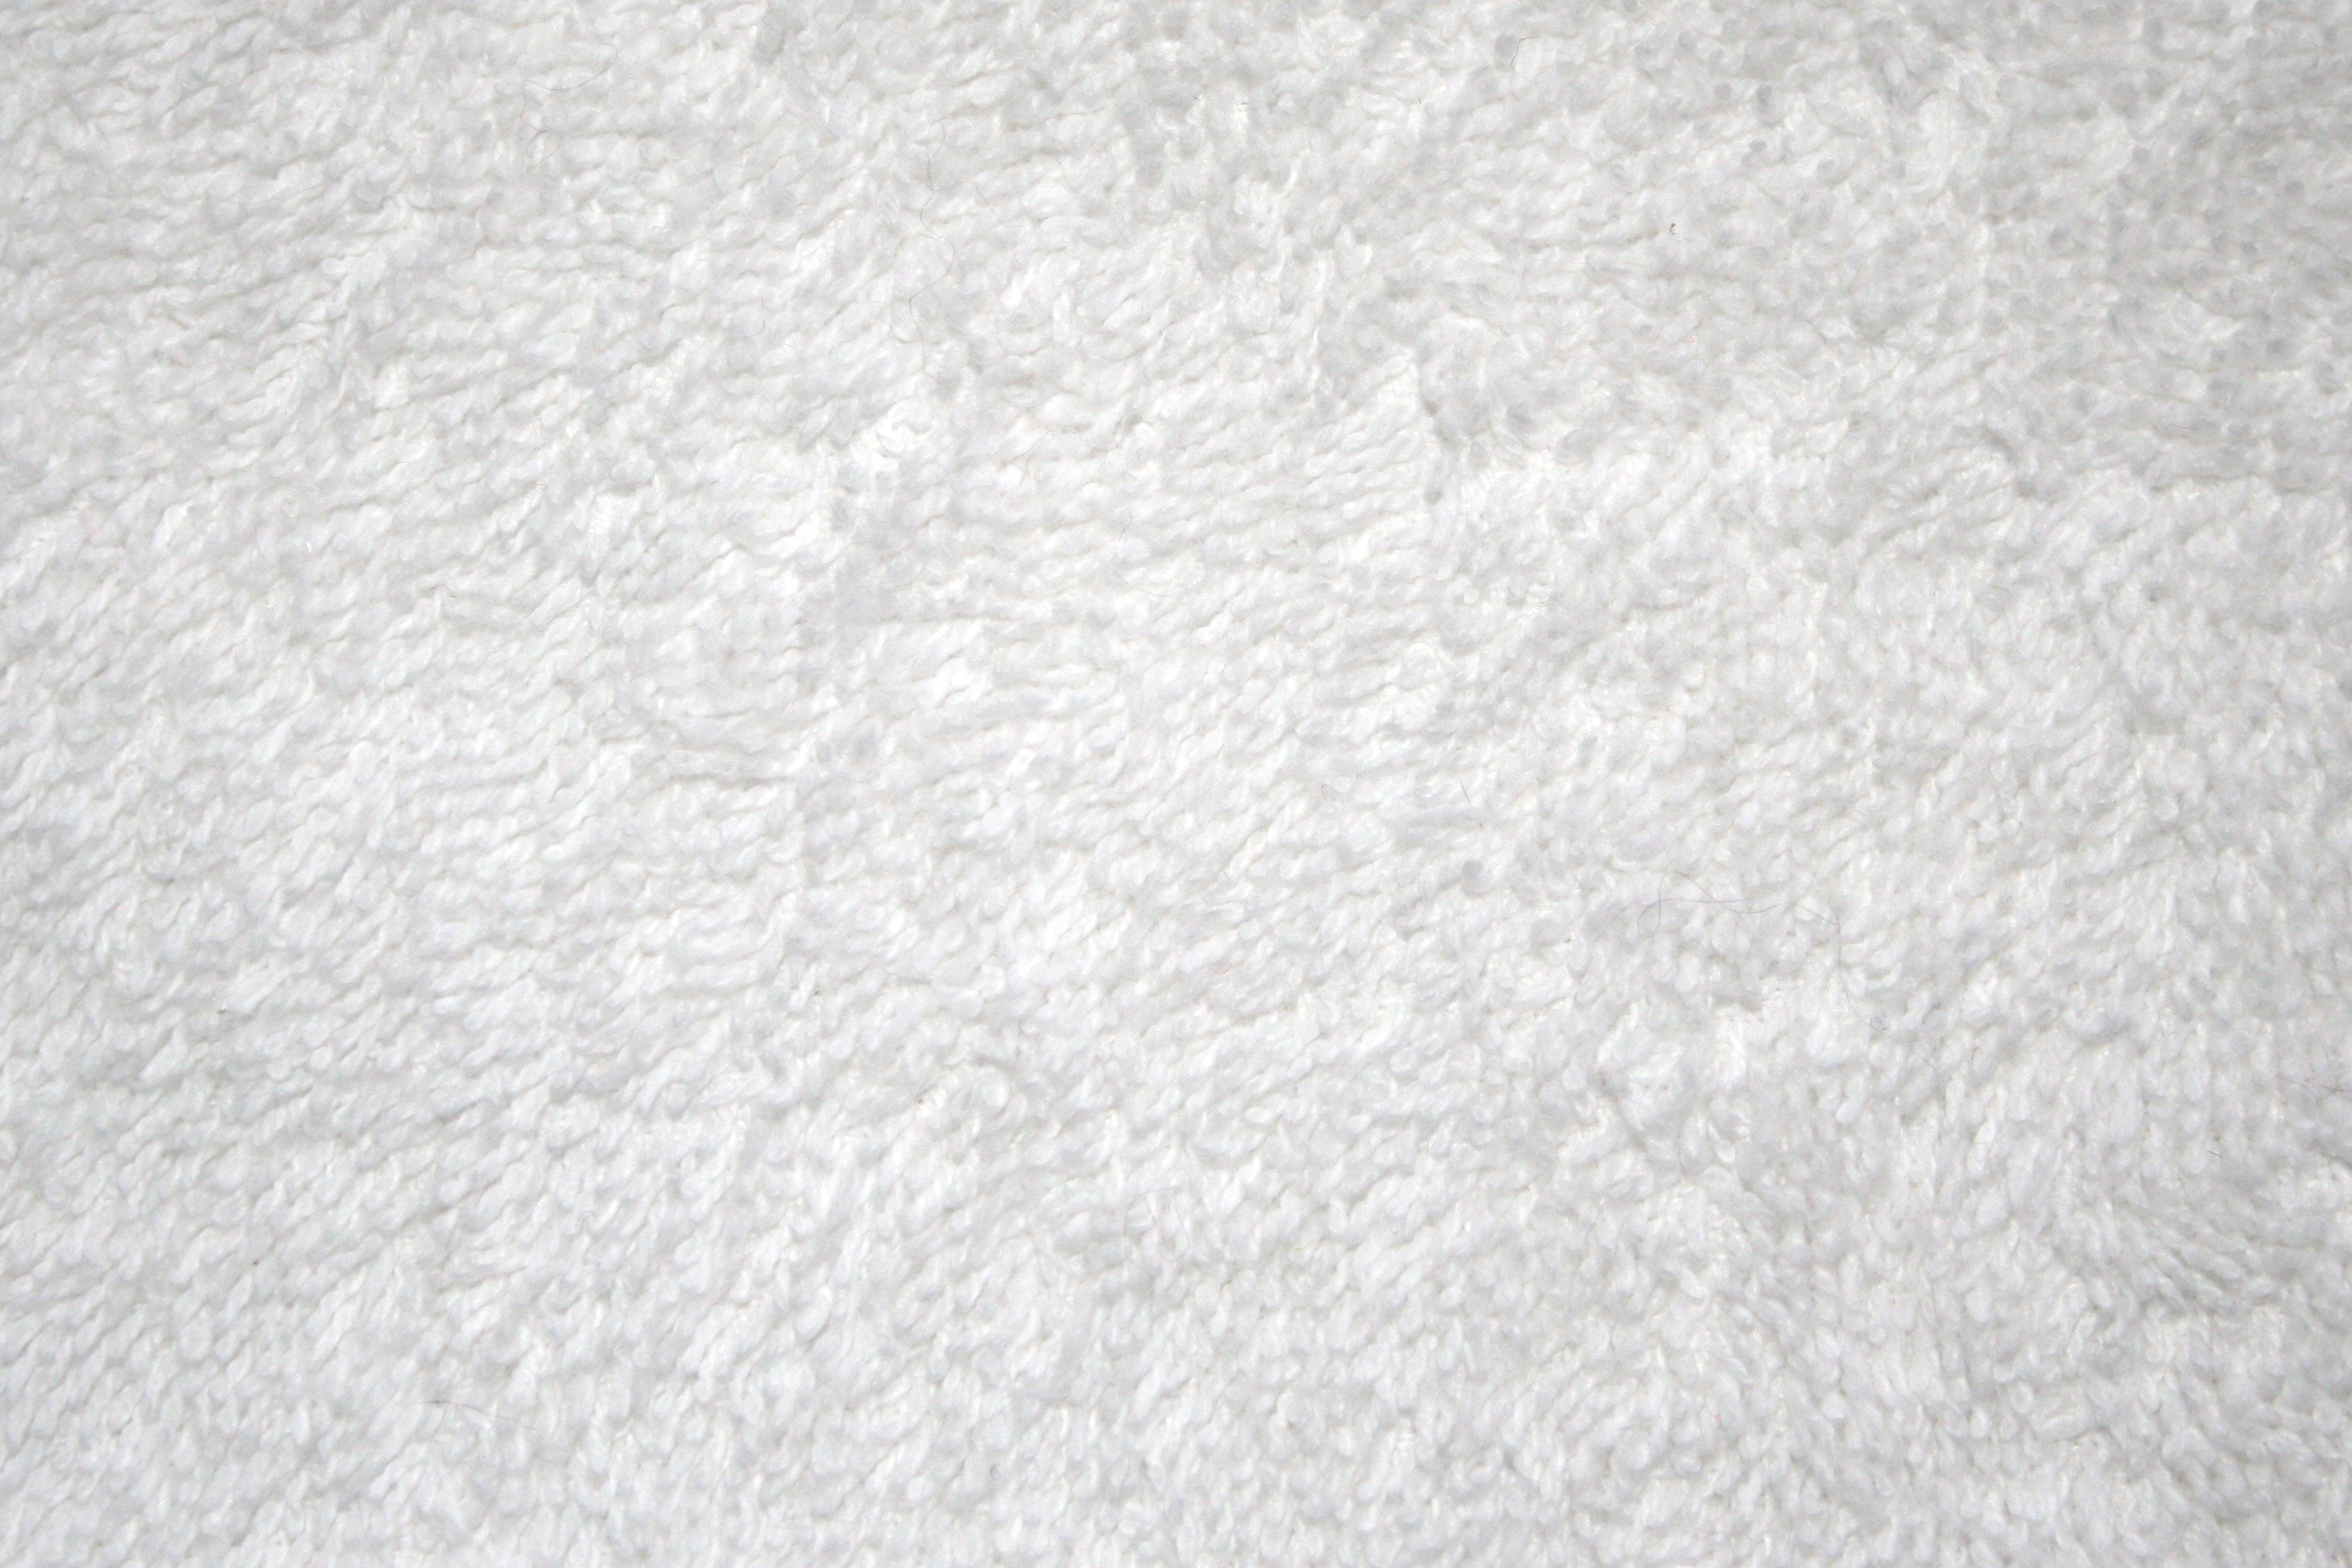 Woven Textures Rug White Terry Cloth Closeup Texture Free High Resolution Photo